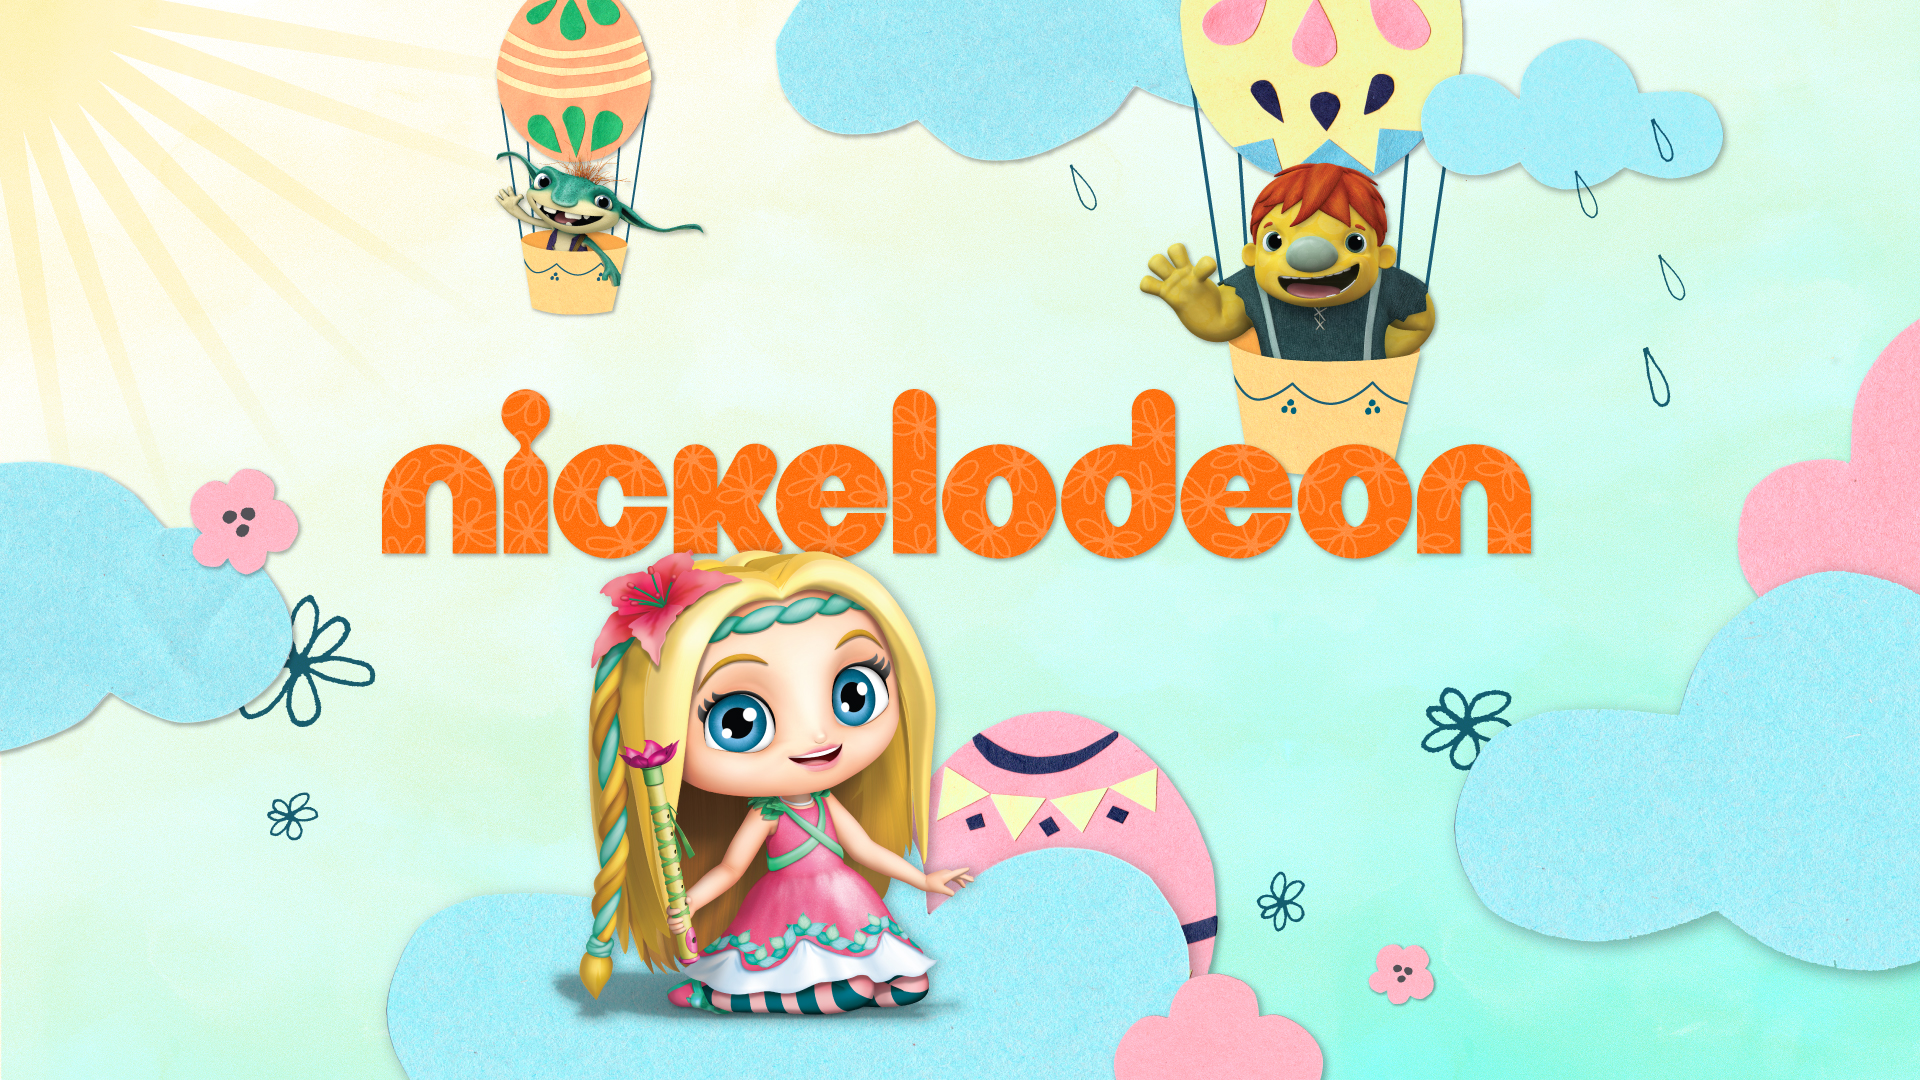 Easter_2015_Nickelodeon-button.jpg